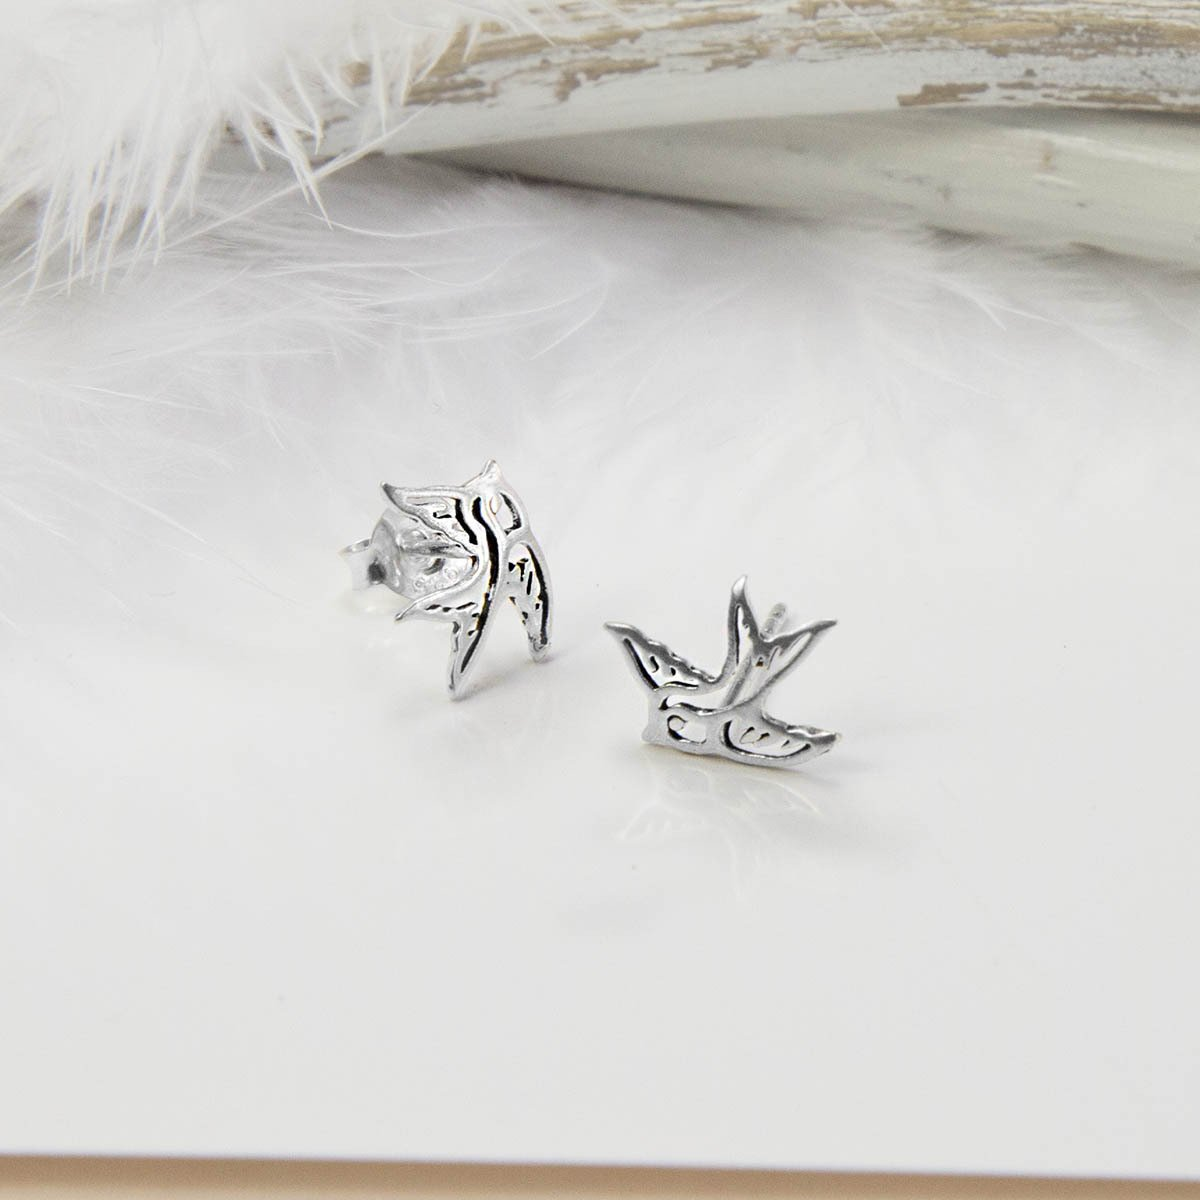 Small Silver Swallow Bird studs with white feather background